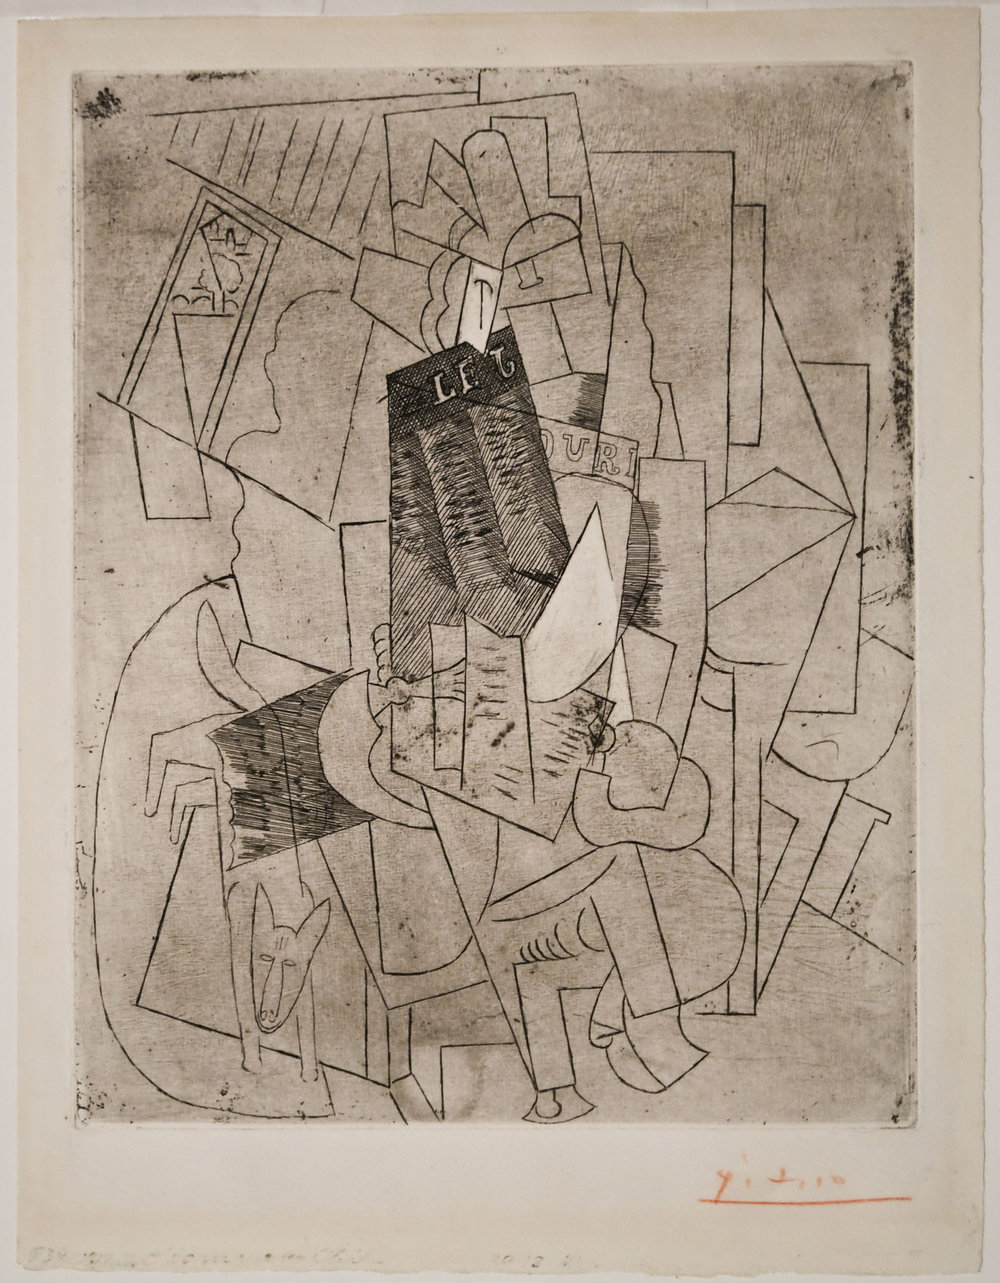 Pablo Picasso, Spanish (Málaga, Spain, 1881 – 1973, Paris, France),  L'Homme au Chien (Rue Schoelcher),  1915, etching with scraper printed on Arches wove paper, Edition of 60, 10 ¾ x 8 5/8 inches. Image courtesy of Modernism Inc., San Francisco.